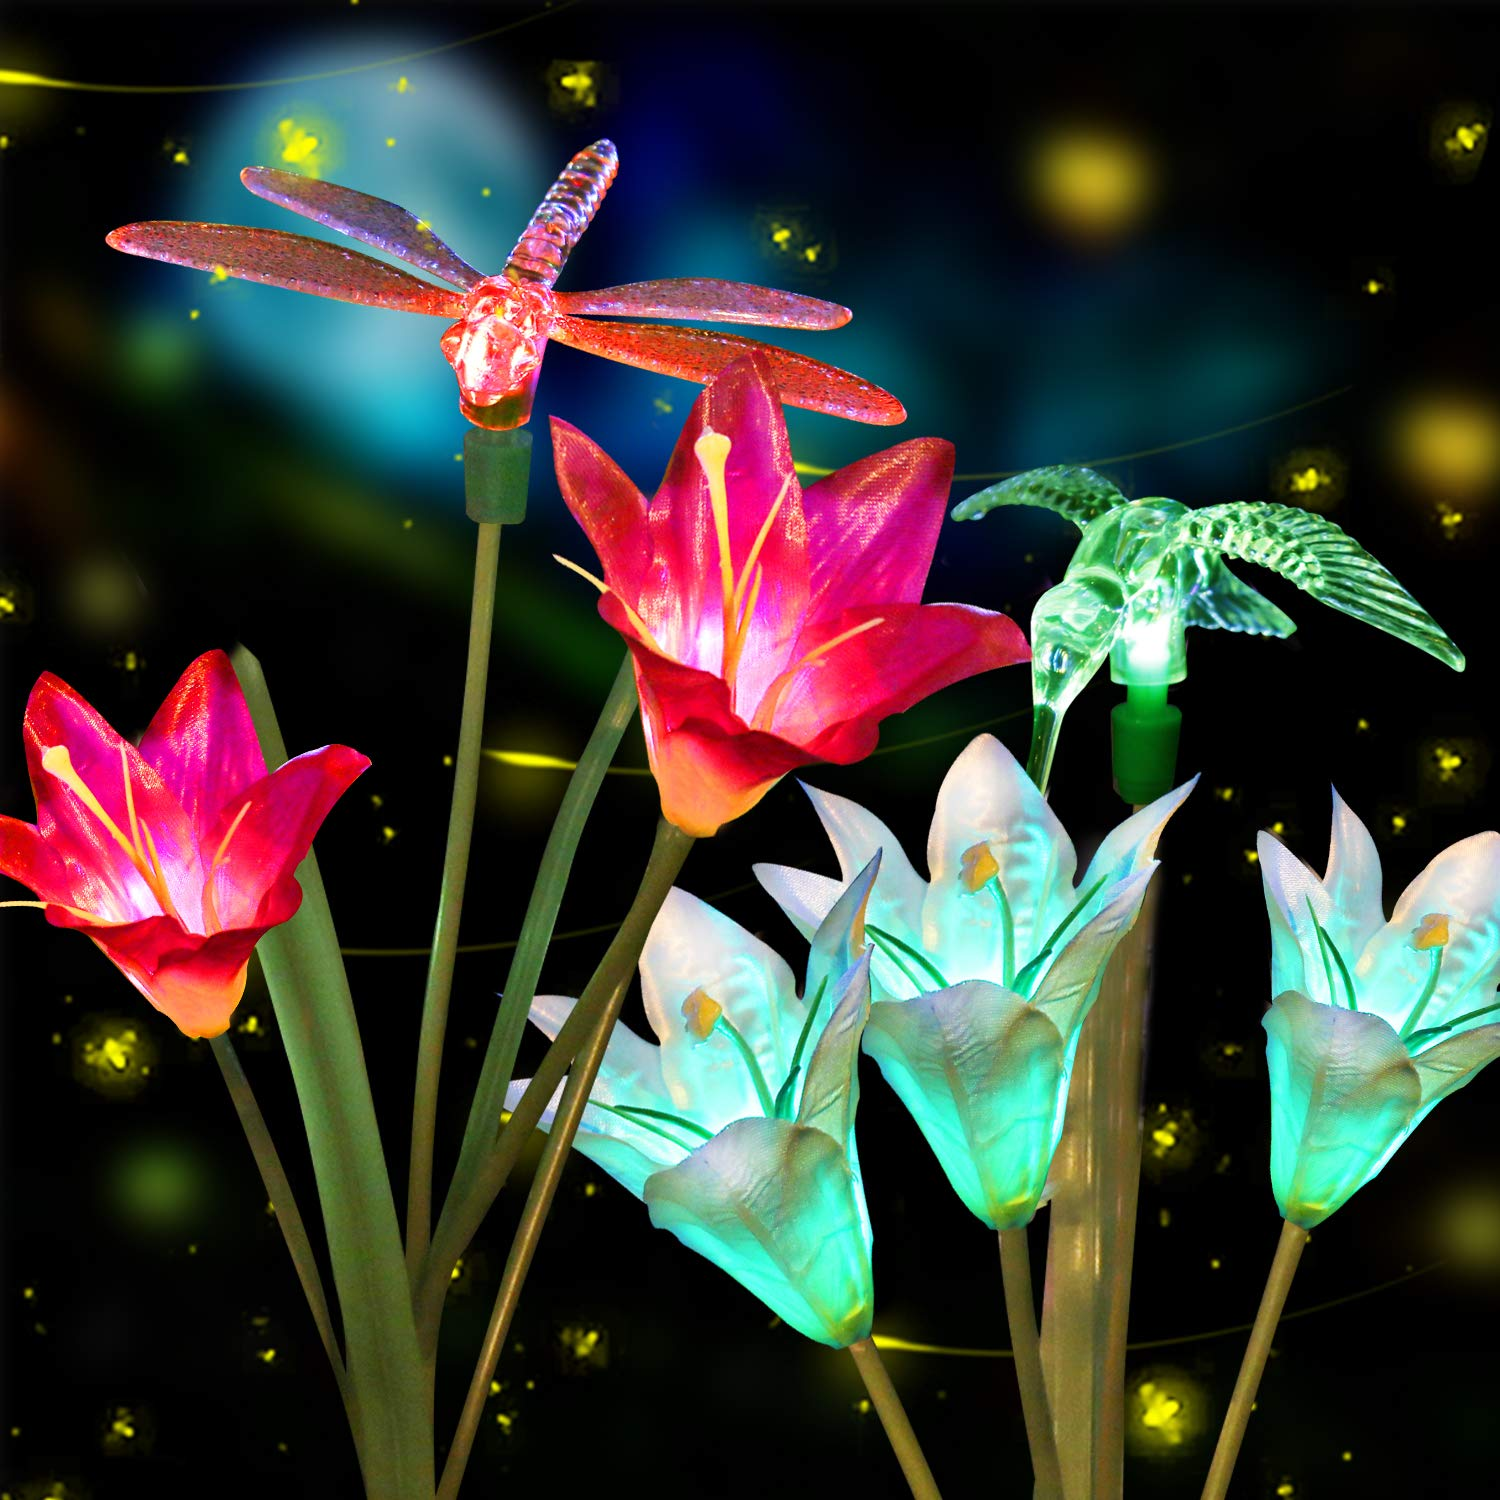 Anpro Outdoor Solar LED Flower Garden Light, Garden Decor with 6 Lily Flower and Butterflies Combination Decorative Lights Multi-Color Changing LED Solar Stake Lights for Garden, Patio, Backyard by Anpro